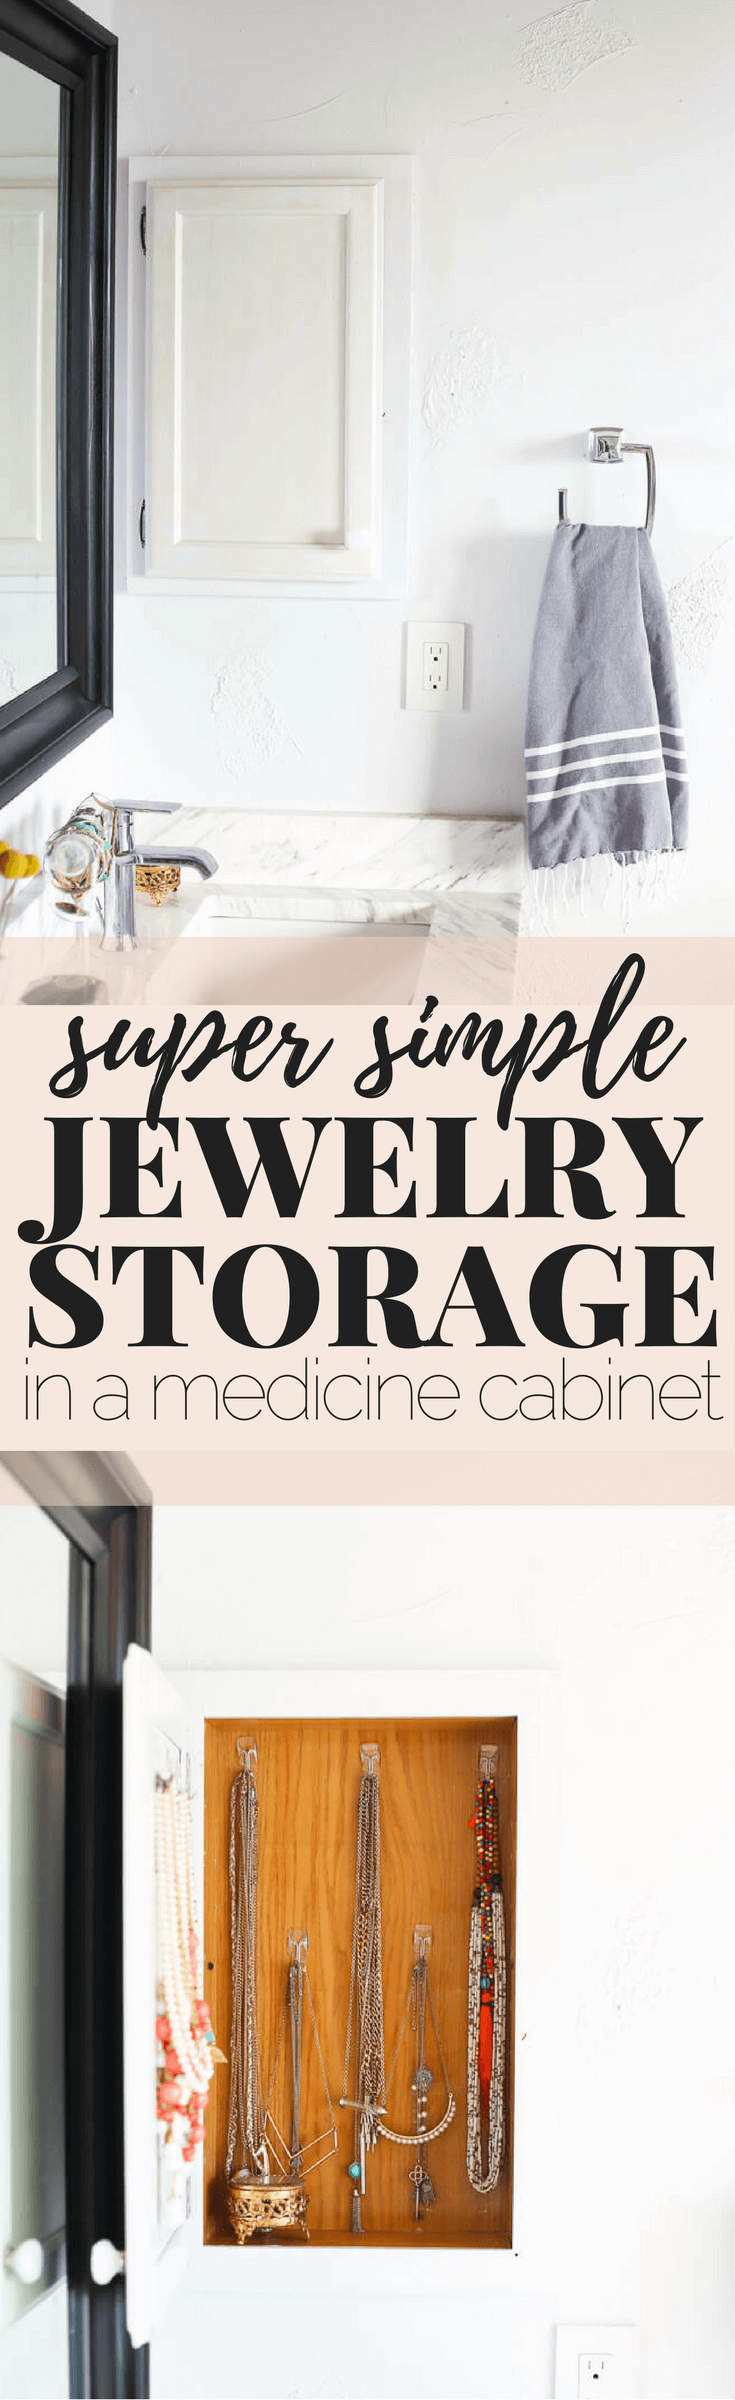 how to store jewelry in a medicine cabinet